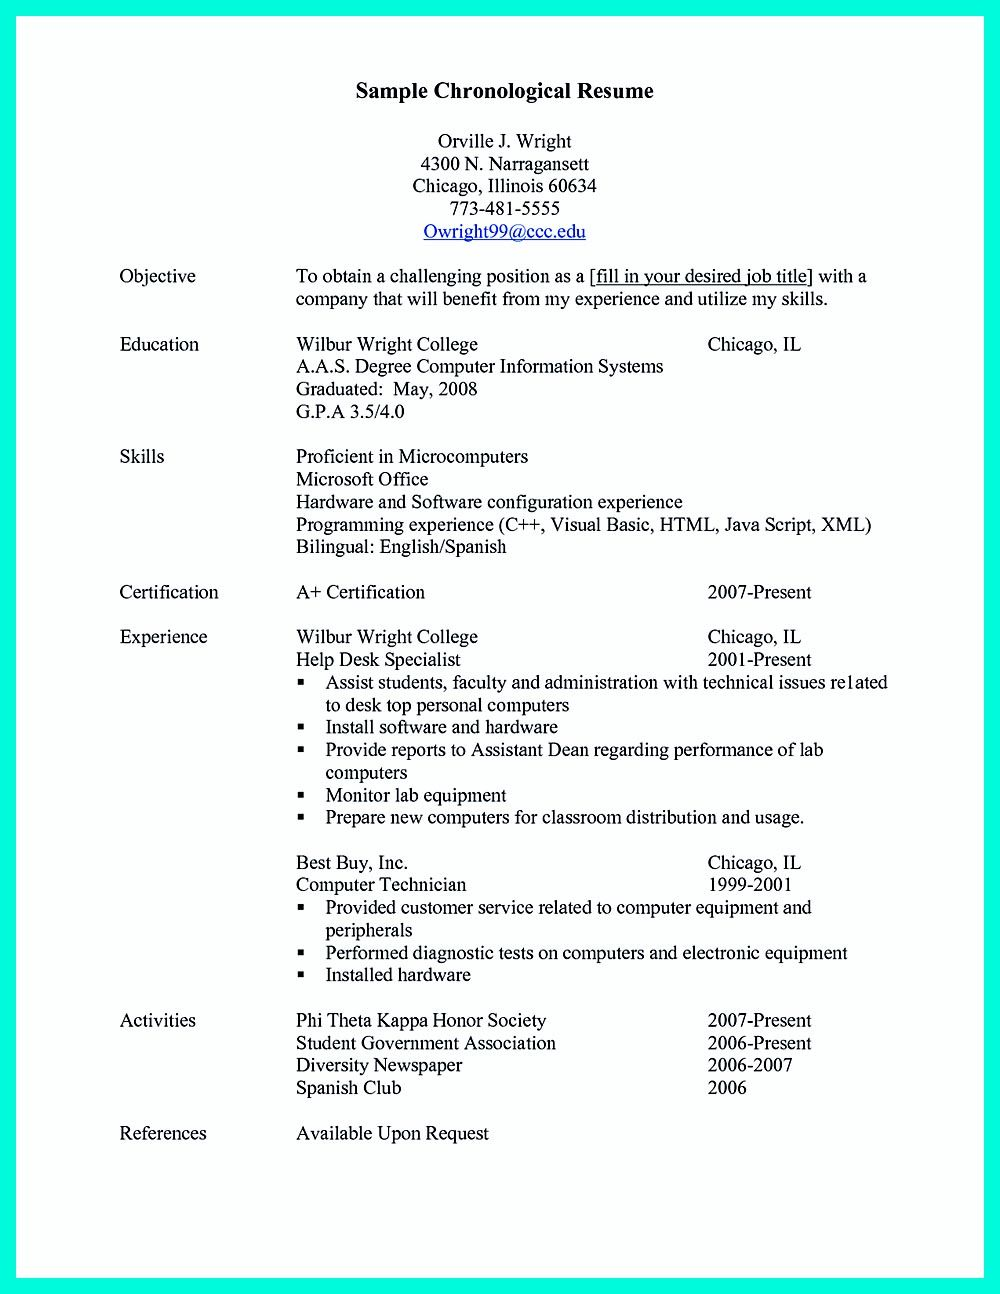 Chronological Resume Template Chronological Resume Is Neededpeople In Making Them Understand